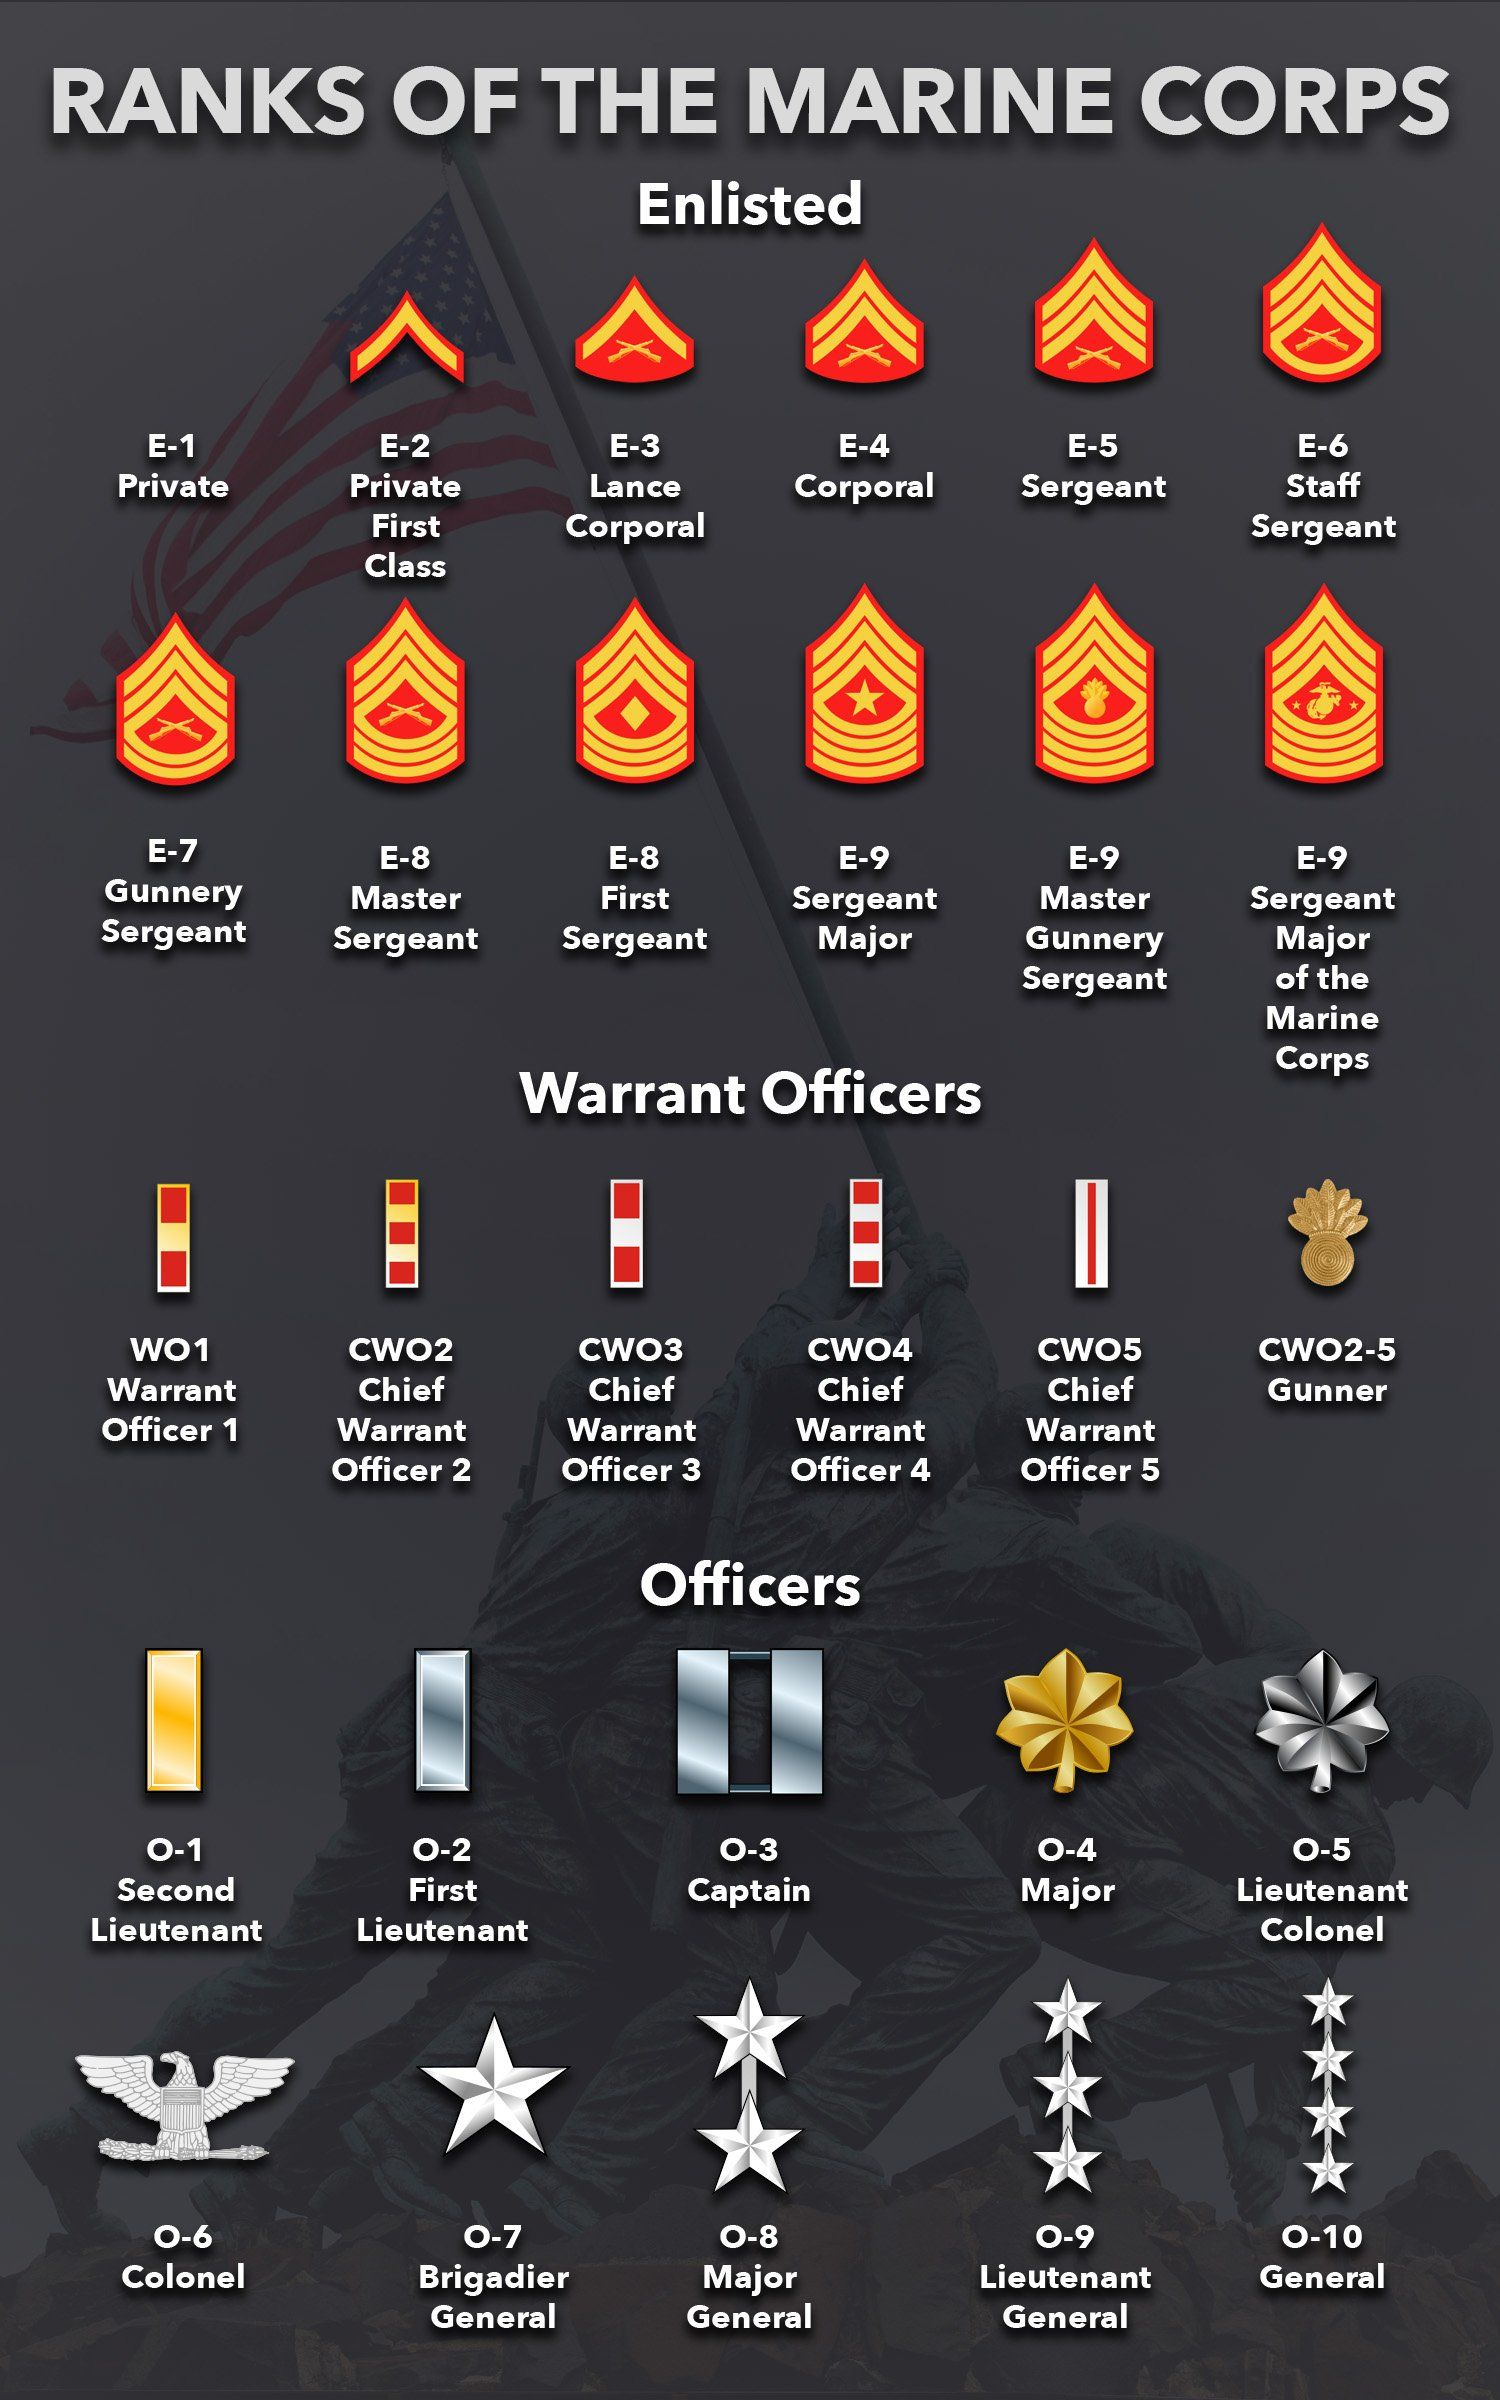 Marine Corps Ranks   Enlisted And Officer Ranks - Marine